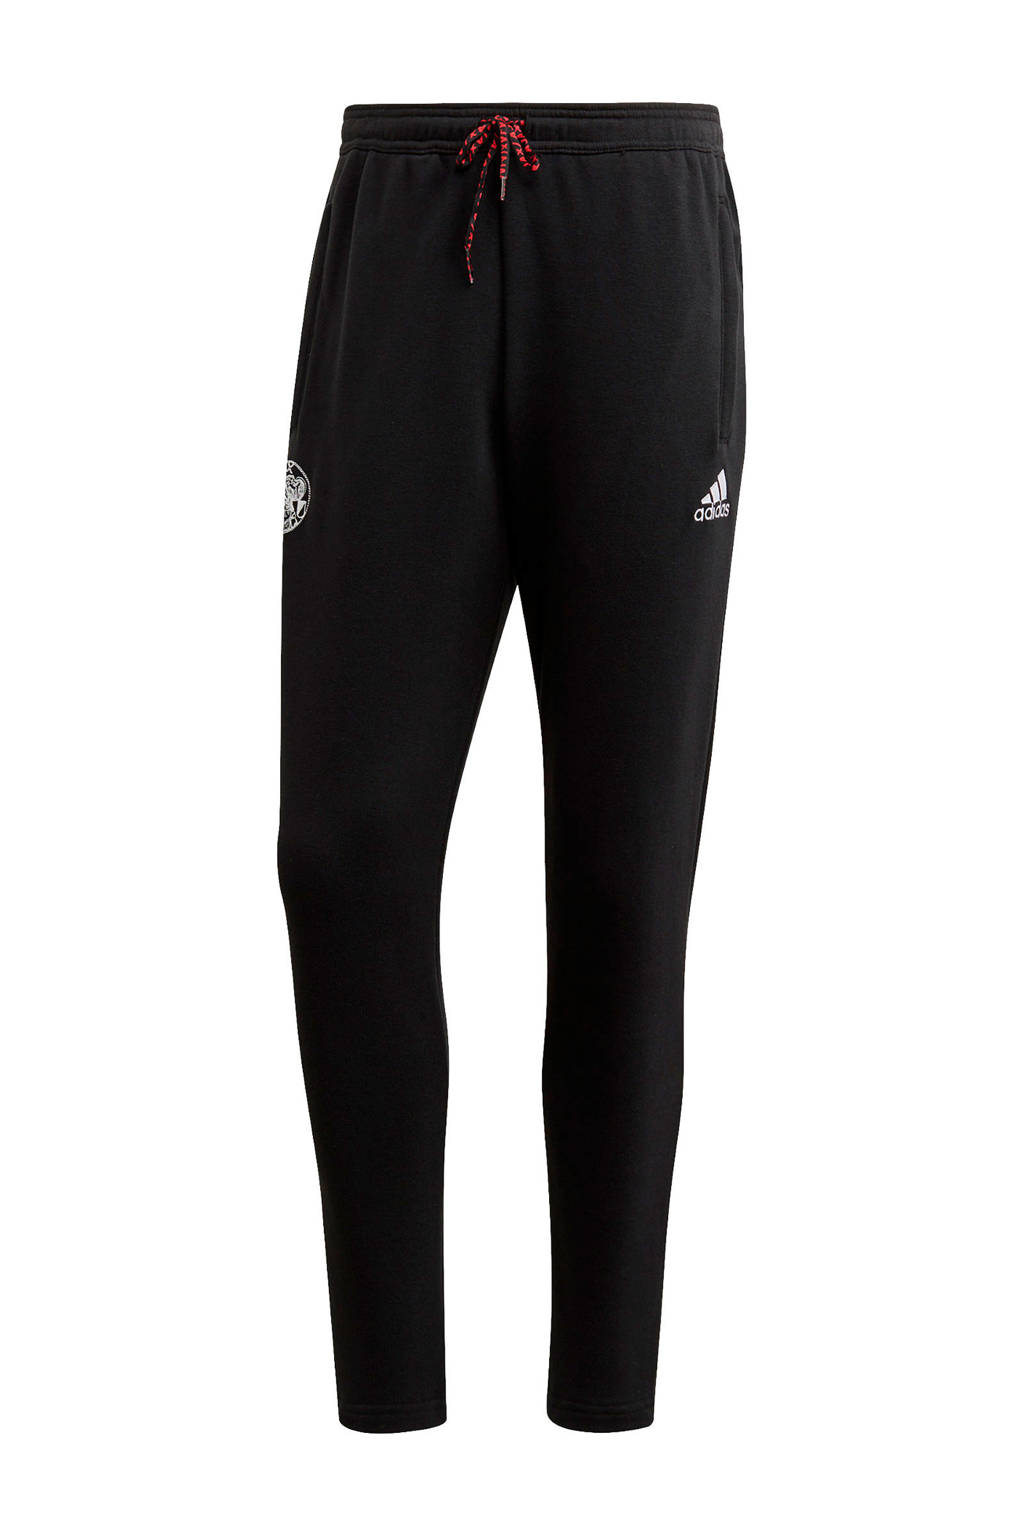 adidas Performance Senior Ajax joggingbroek zwart, Zwart